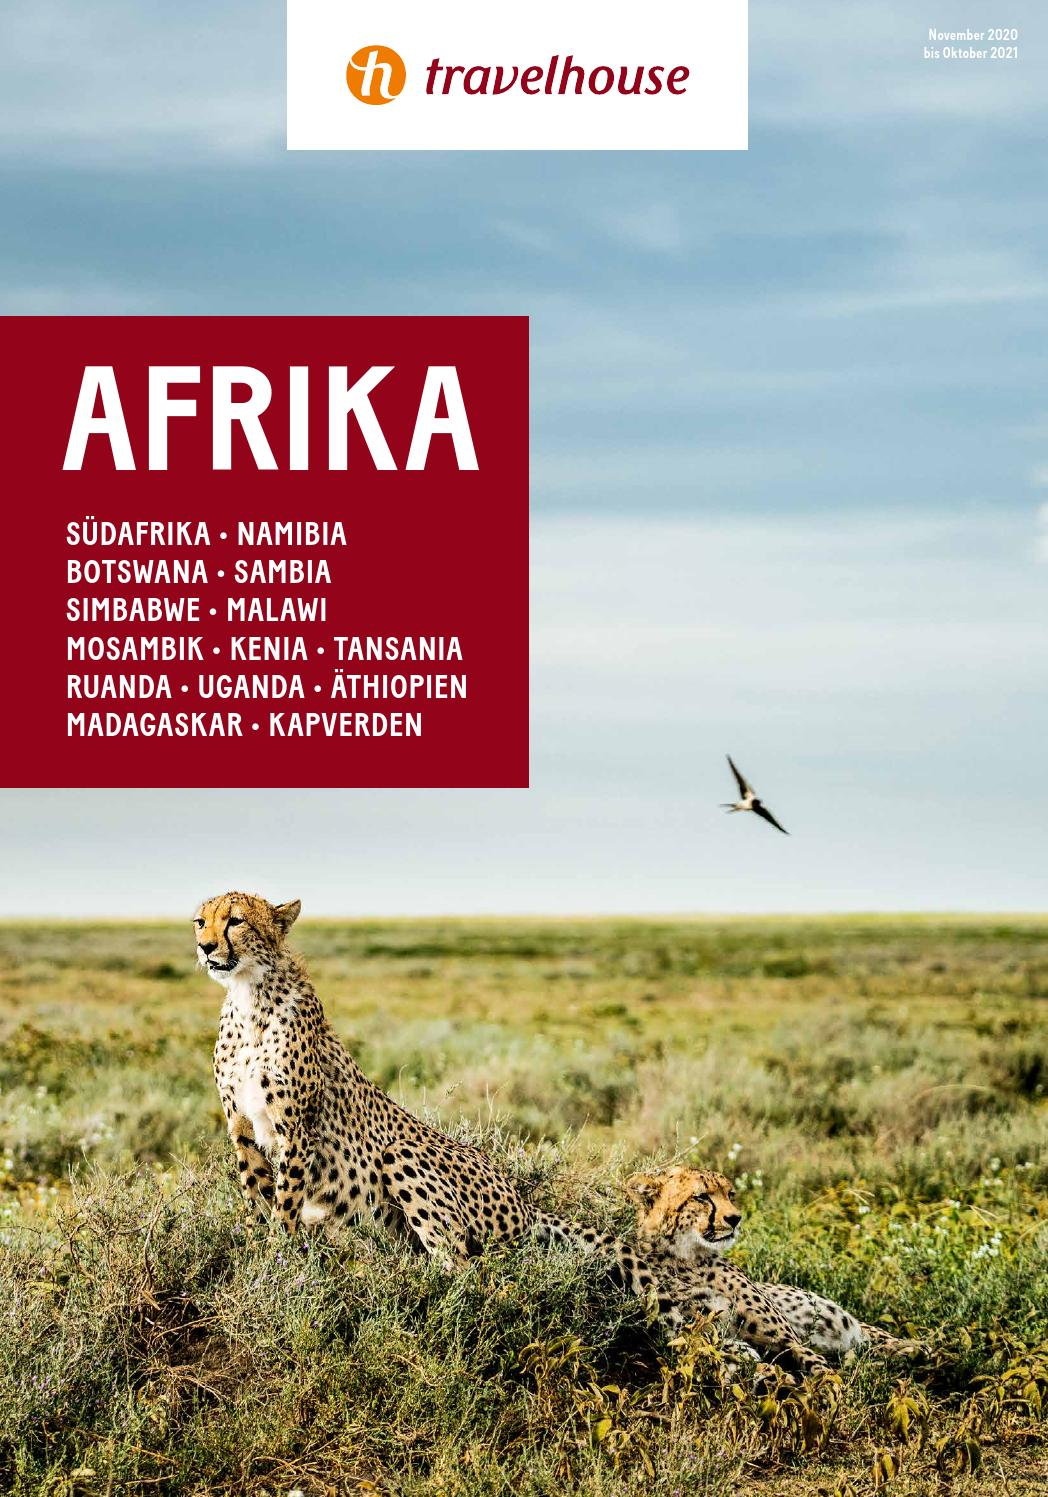 Travelhouse Afrika November 2020 Bis Oktober 2021 By Hotelplan Suisse Mtch Ag Issuu